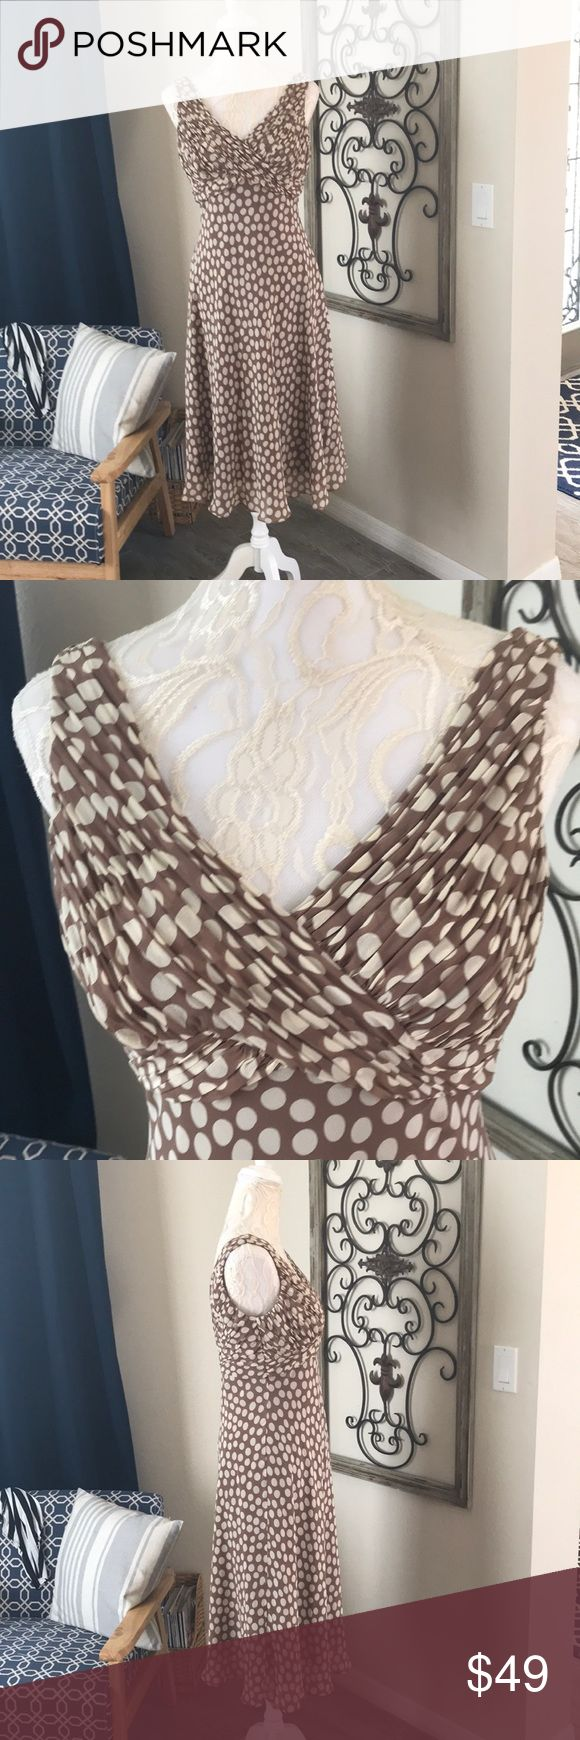 """Adrianna Papell Polka Dot Sundress A sweet milk chocolate brown Sundress with cream dots! Elegant and versatile, perfect as a summer wedding guest dress. Light and ethereal, floats on air silk, and no signs of wear. The skirt is full and perfect for dancing the night away. Gathered, V bodice front and back and a hook and eye and zipper closure in back too. Approximately 36"""" from underarm to hem. From a smoke free home. 🍷 Adrianna Papell Dresses"""